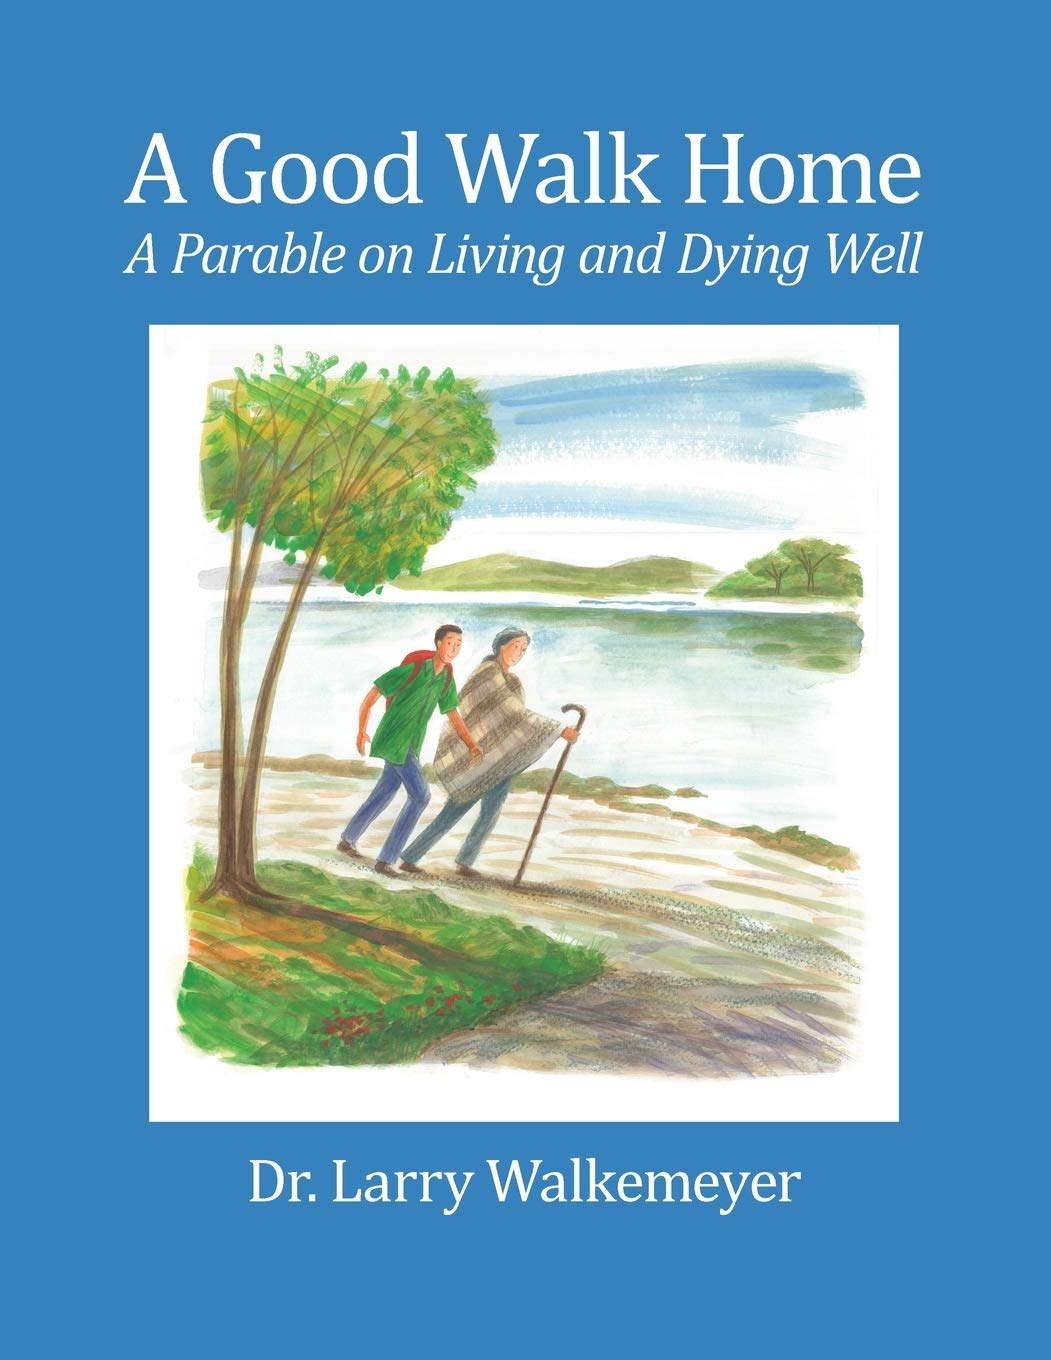 A Good Walk Home: A Parable on Living and Dying Well